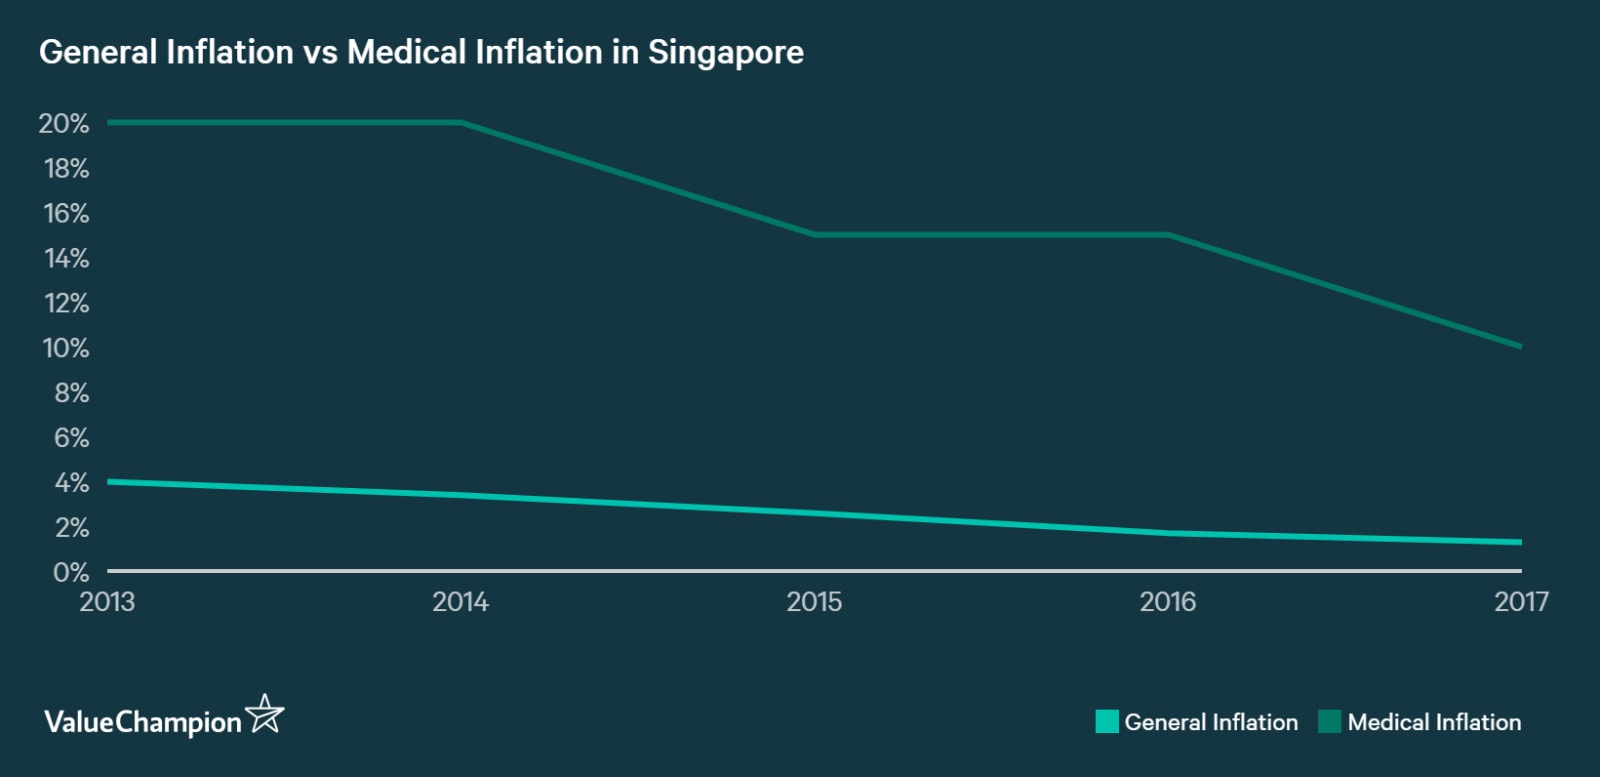 Medical inflation rate in Singapore has been a few factors higher than the general consumer price inflation rate in the country